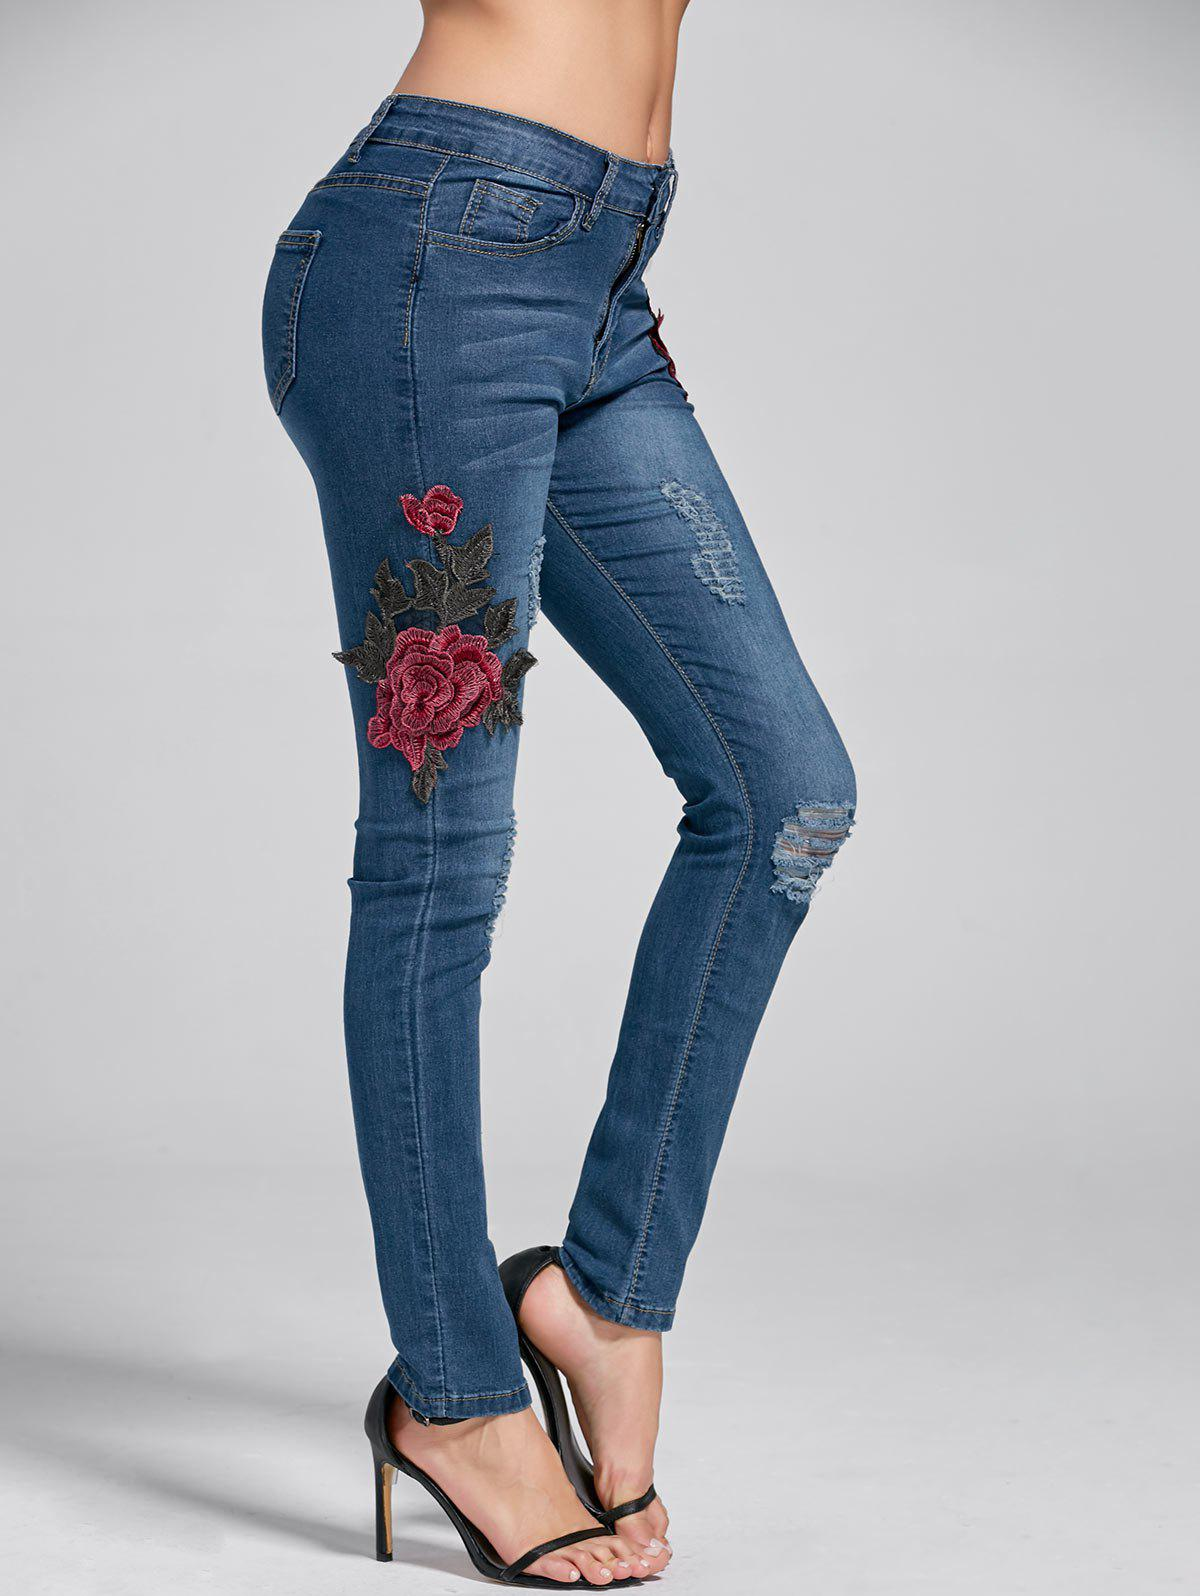 Embroidery Skinny Ripped Jeans romoss sailing 2